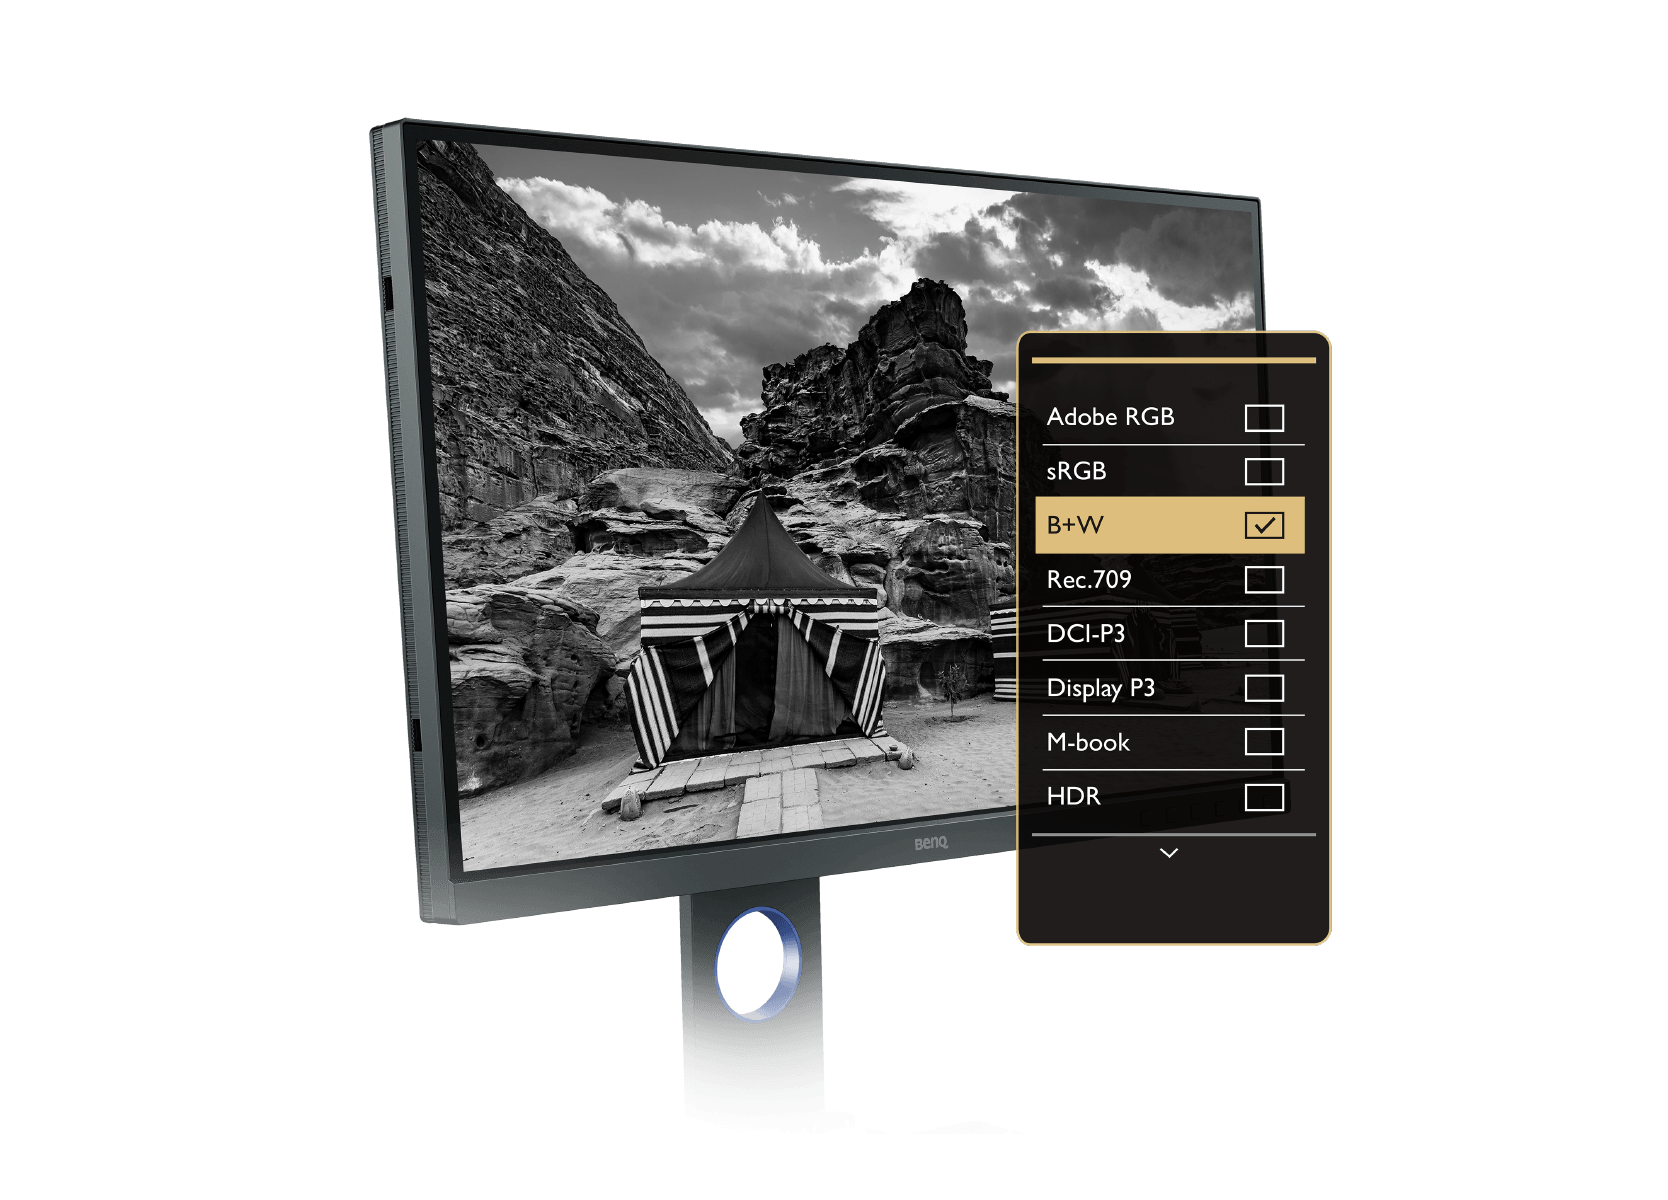 benq photographer monitor provides advanced black & white mode to preview color photos in any of three preset black and white settings before editing